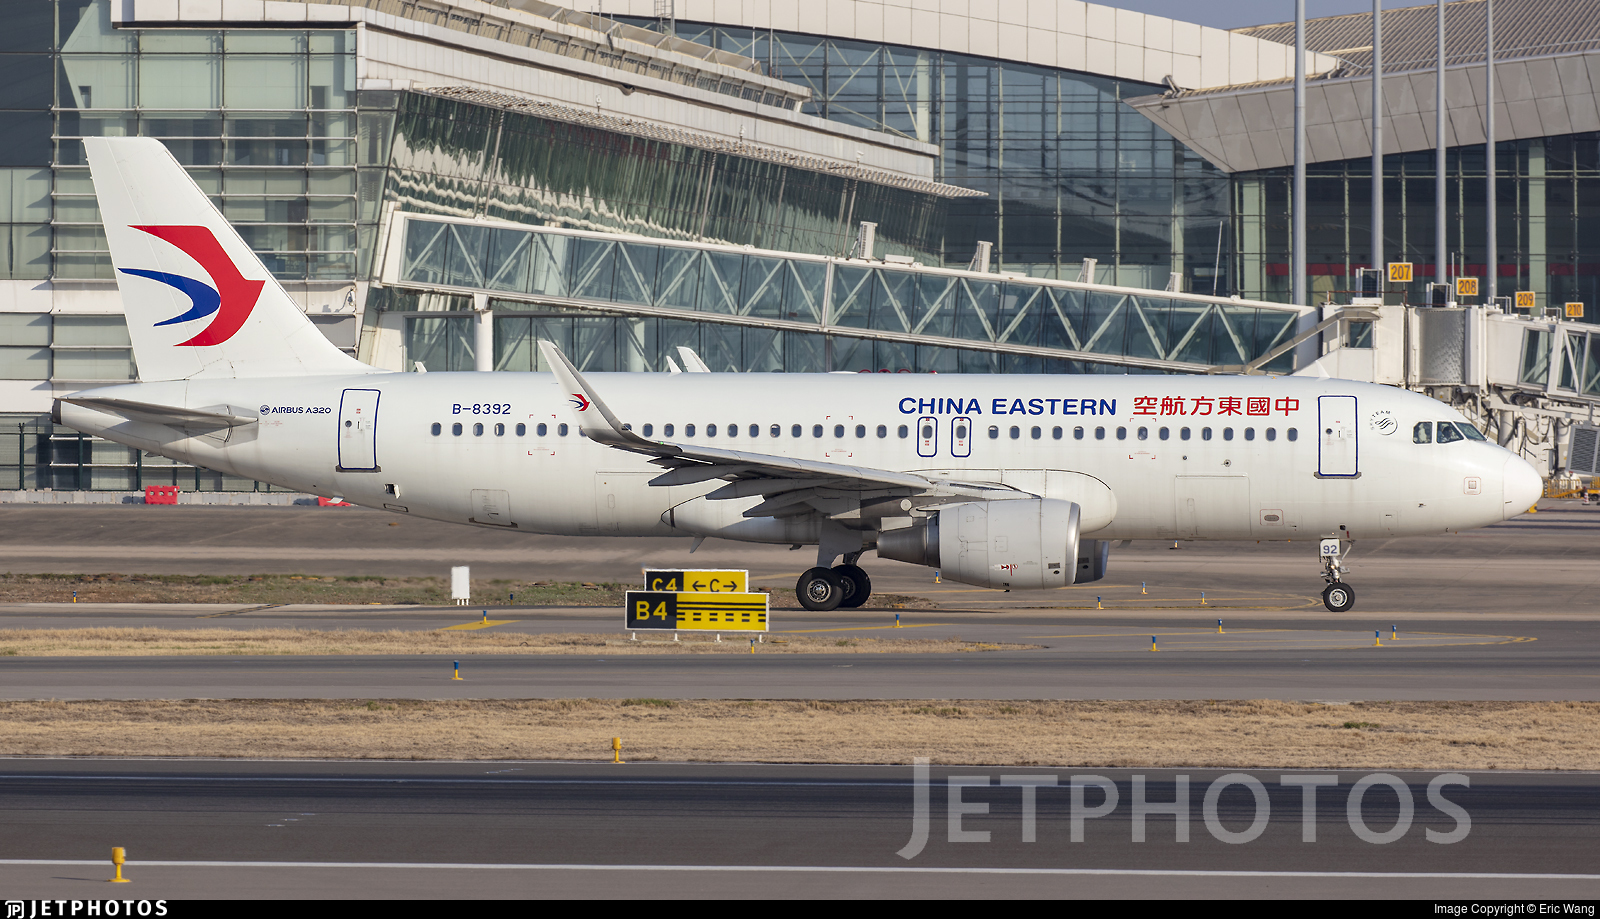 B-8392 - Airbus A320-214 - China Eastern Airlines